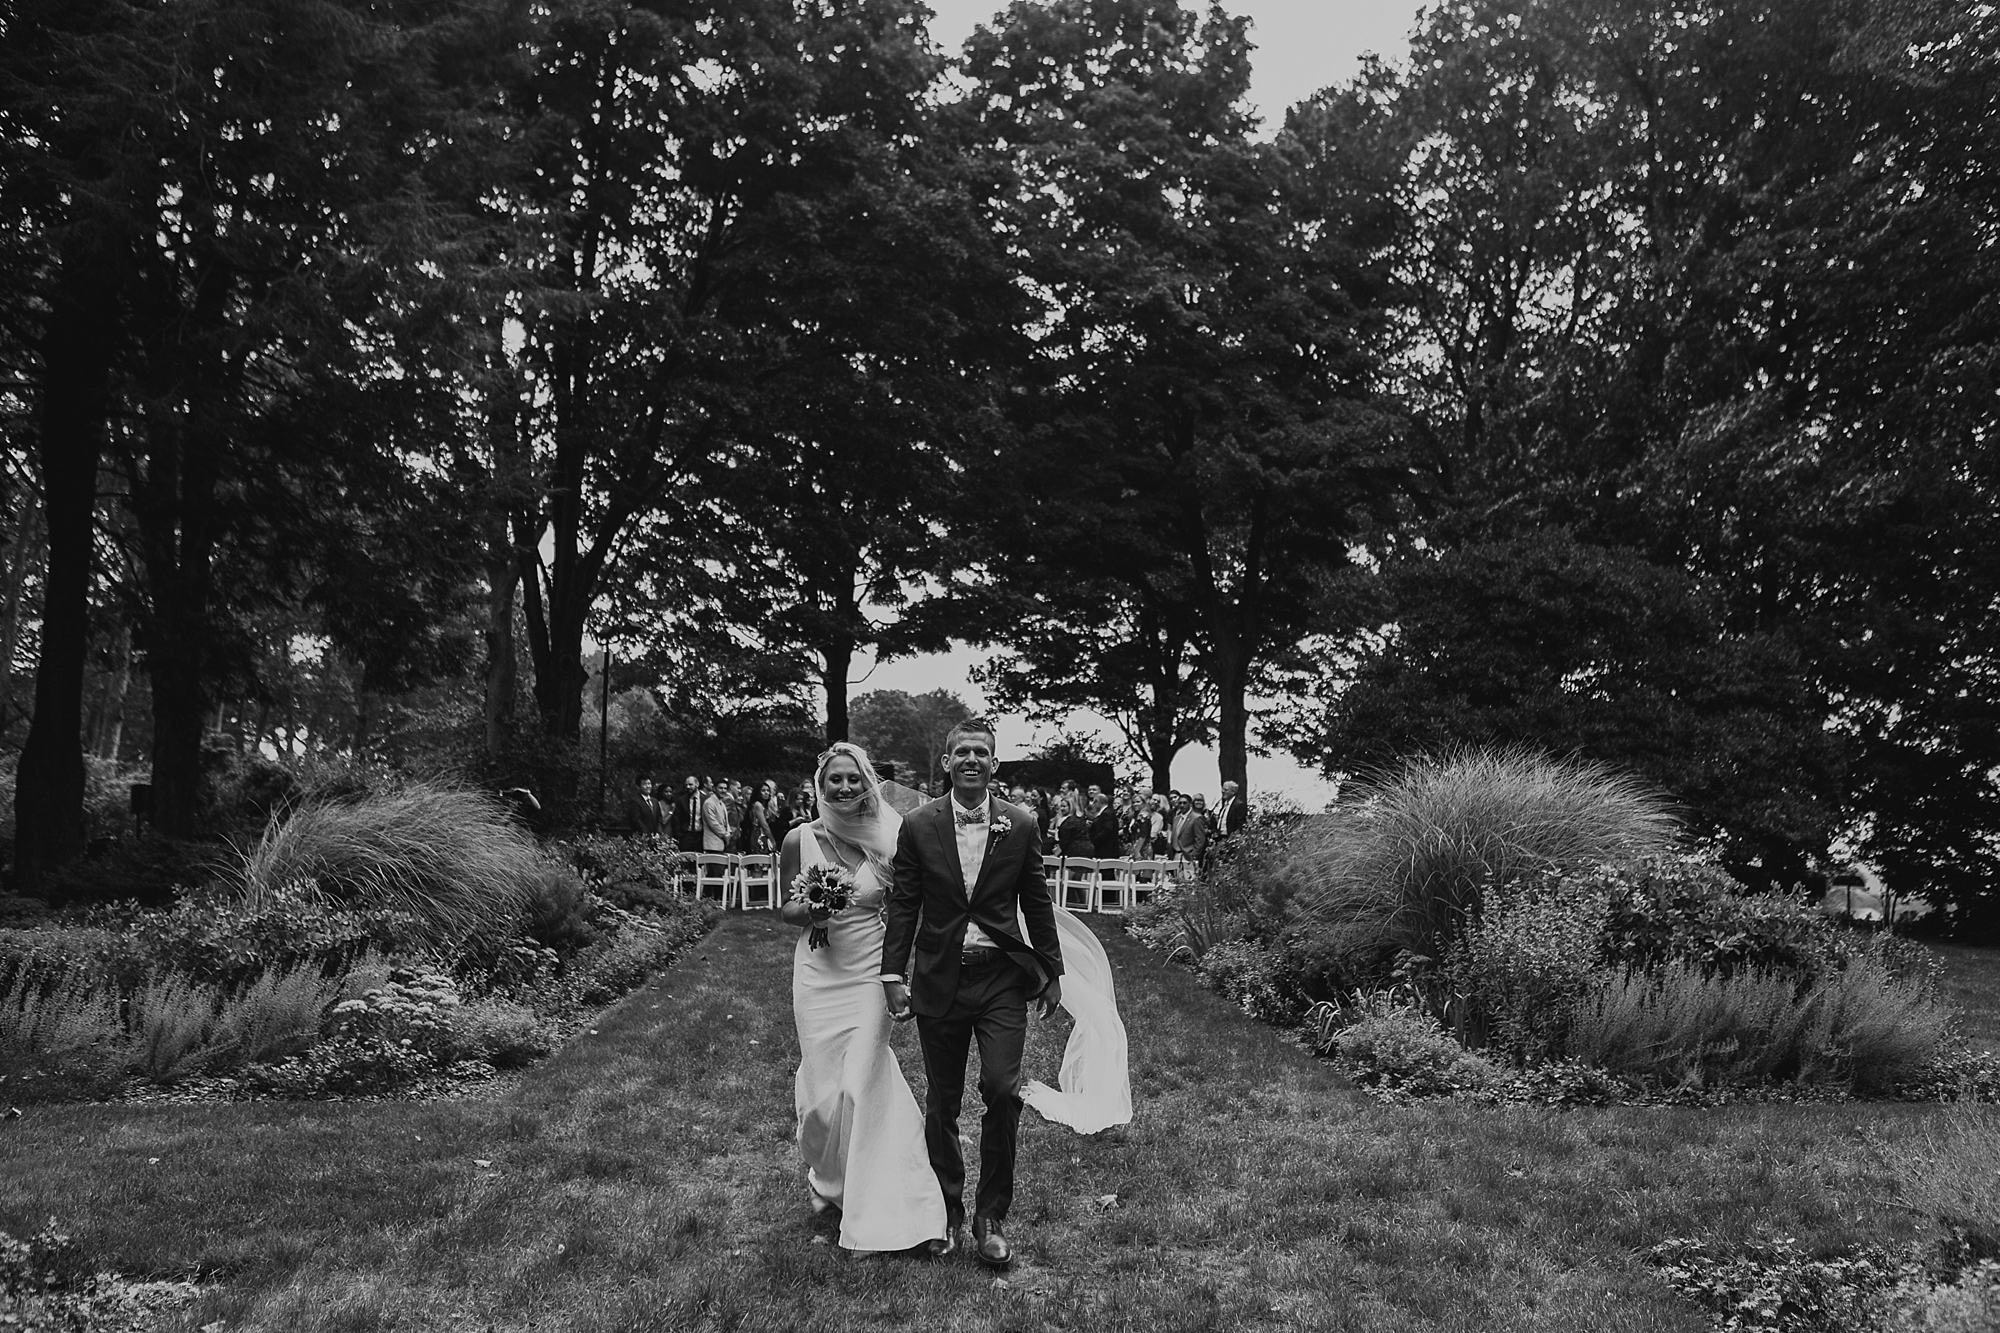 Druemore_Joe_Mac_Creative_Philadelphila_Wedding_Photography_drumore_estate_pequea_Best_lancaster_wedding_venues_0041.jpg